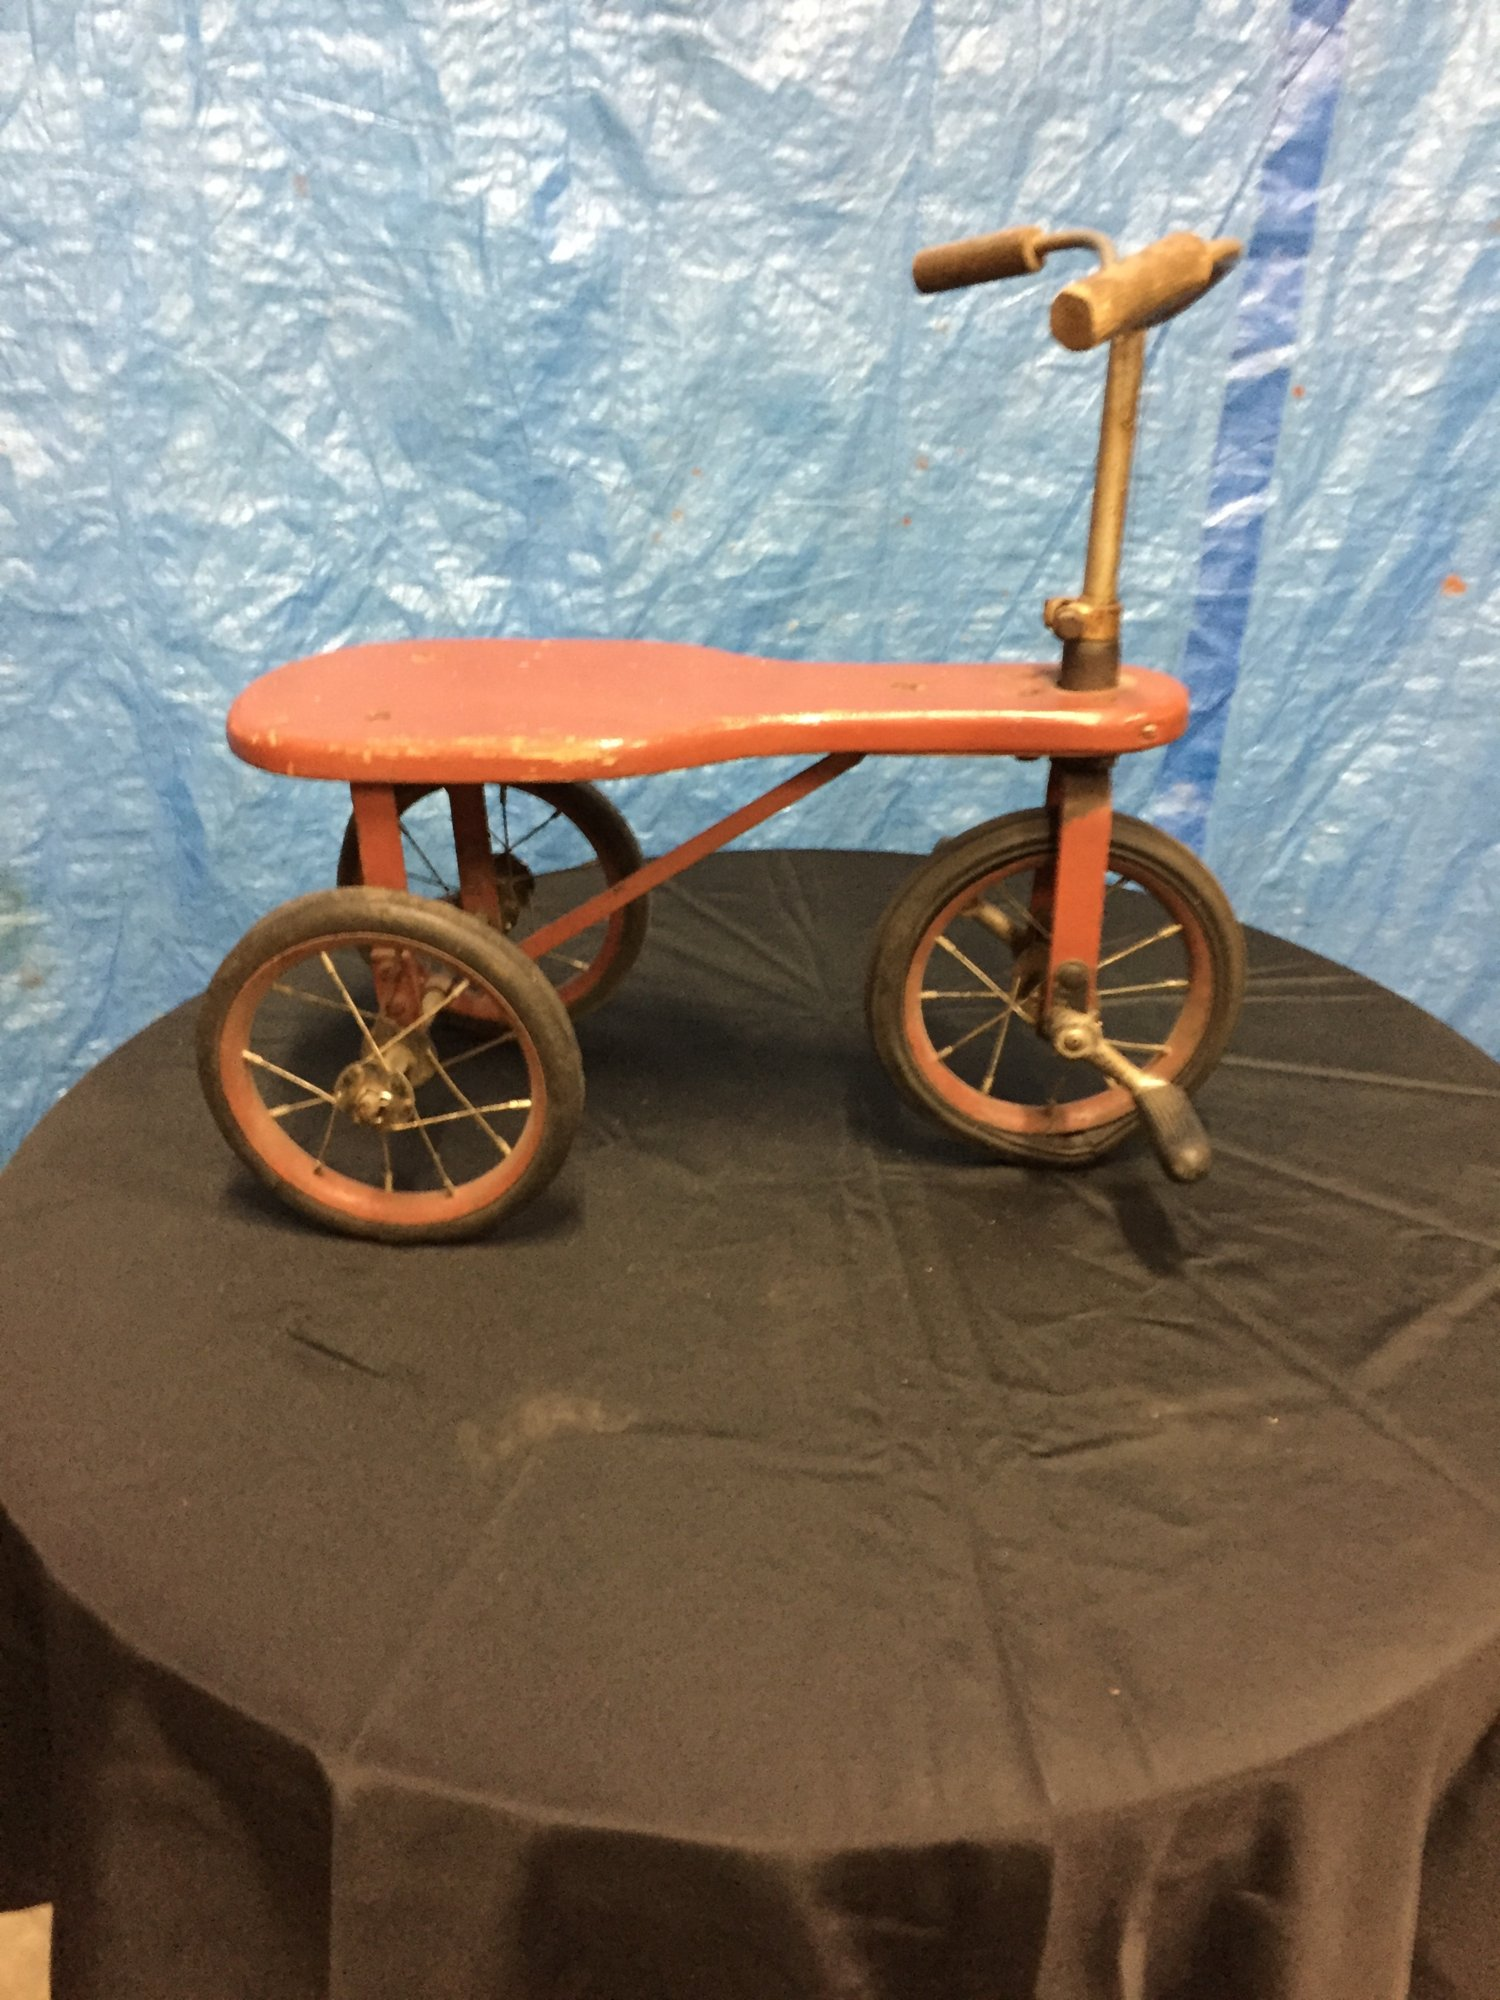 Vintage Wooden Seat,spoked wheel tricycle - $65.jpg